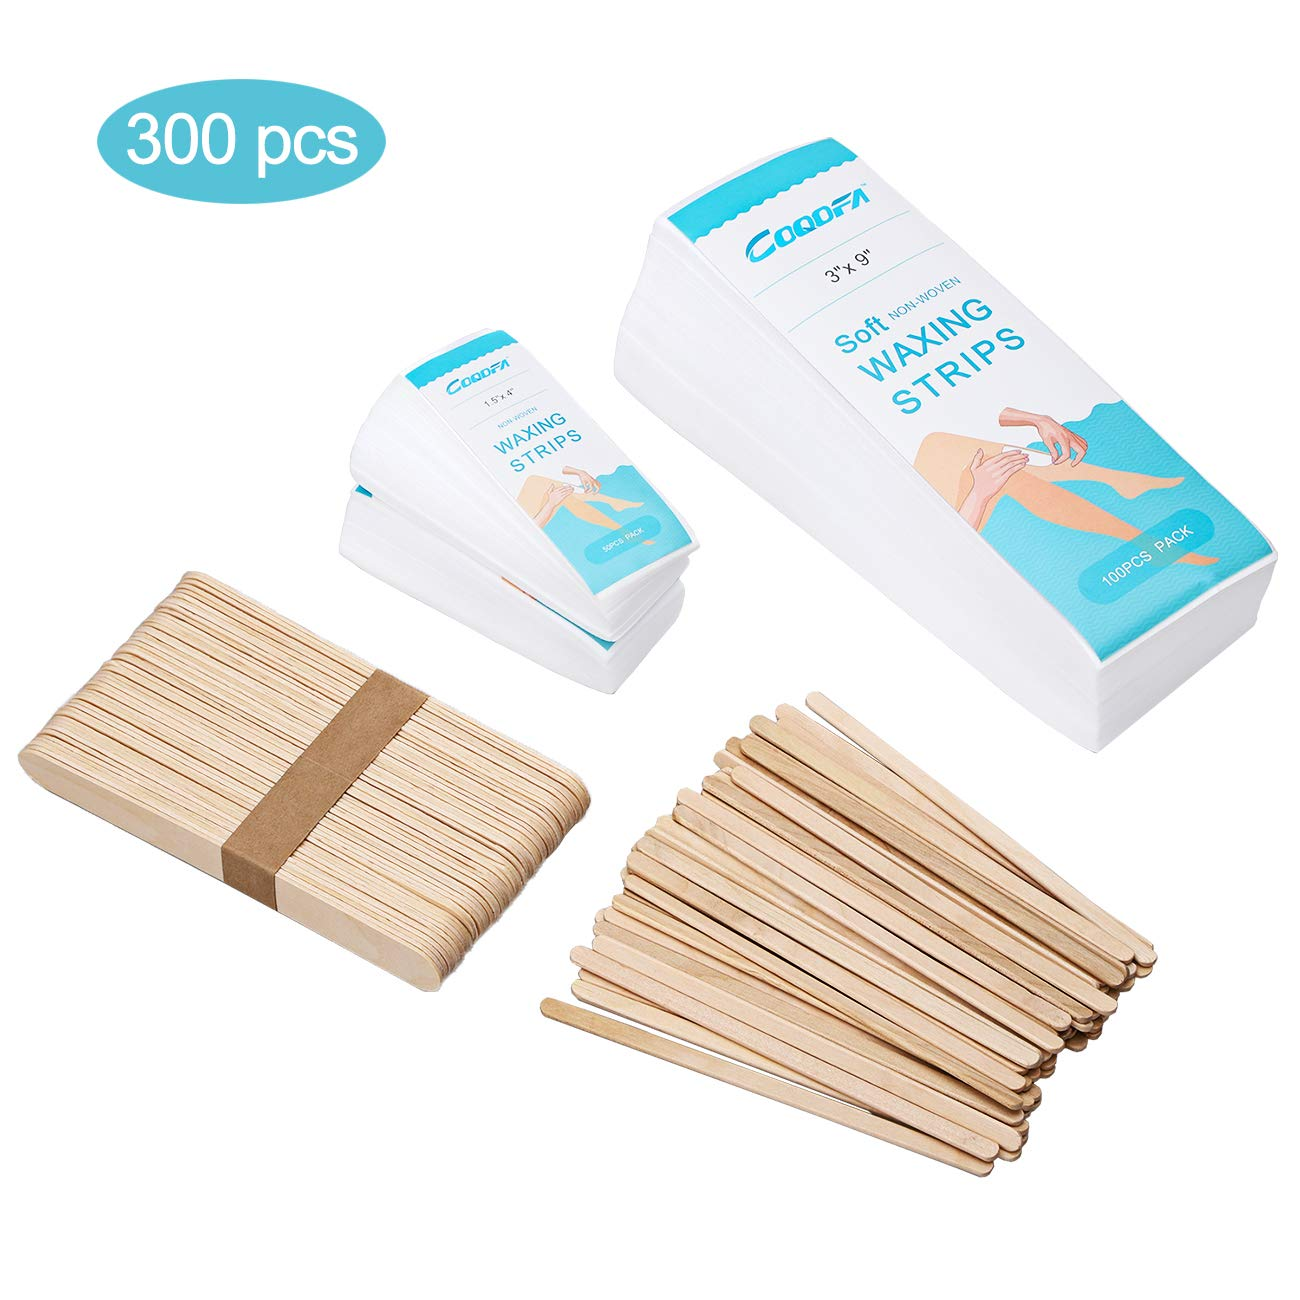 300 Pieces Waxing Strips, Non-Woven Hair Removal Wax Strips for Full Body Size and Unisex, 200 Pcs Wax Strips (100 Large, 100 Small) and 100 Pcs Wax Applicator Sticks (50 Large, 50 Small)